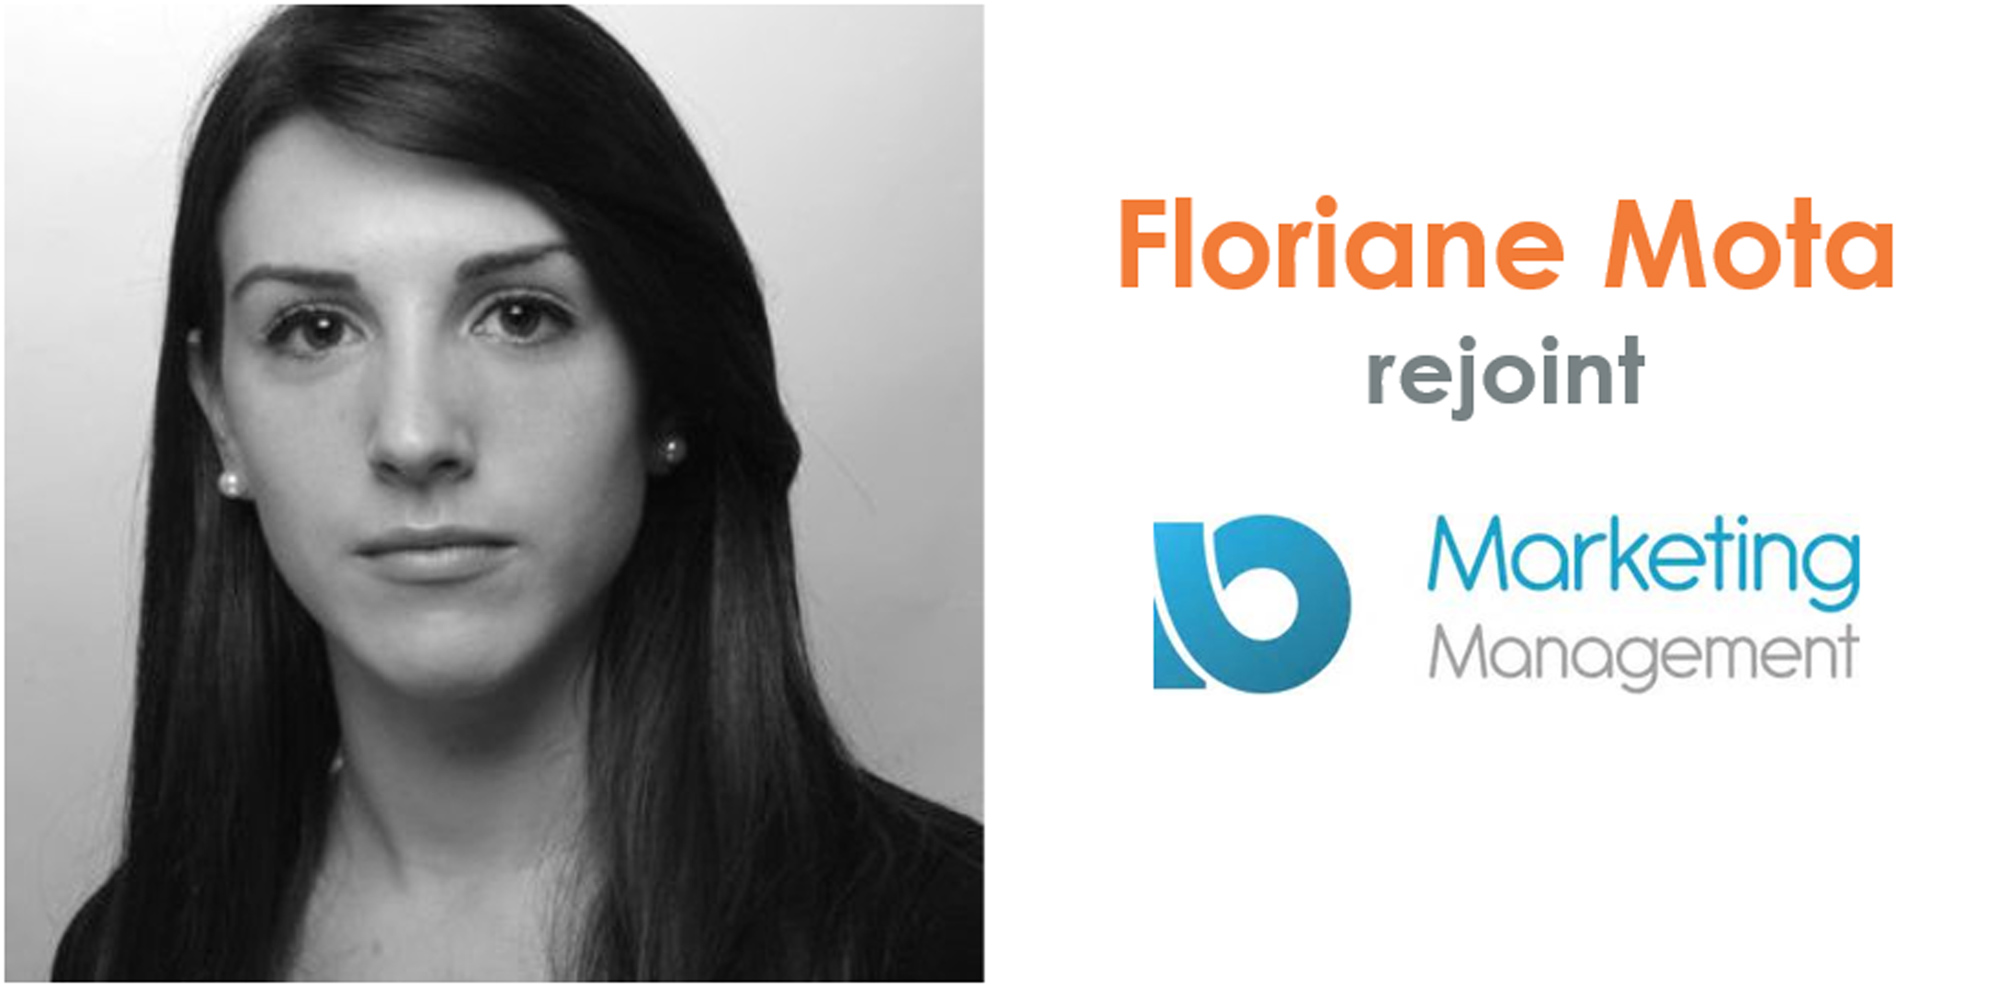 Floriane Mota rejoint Marketing Management IO